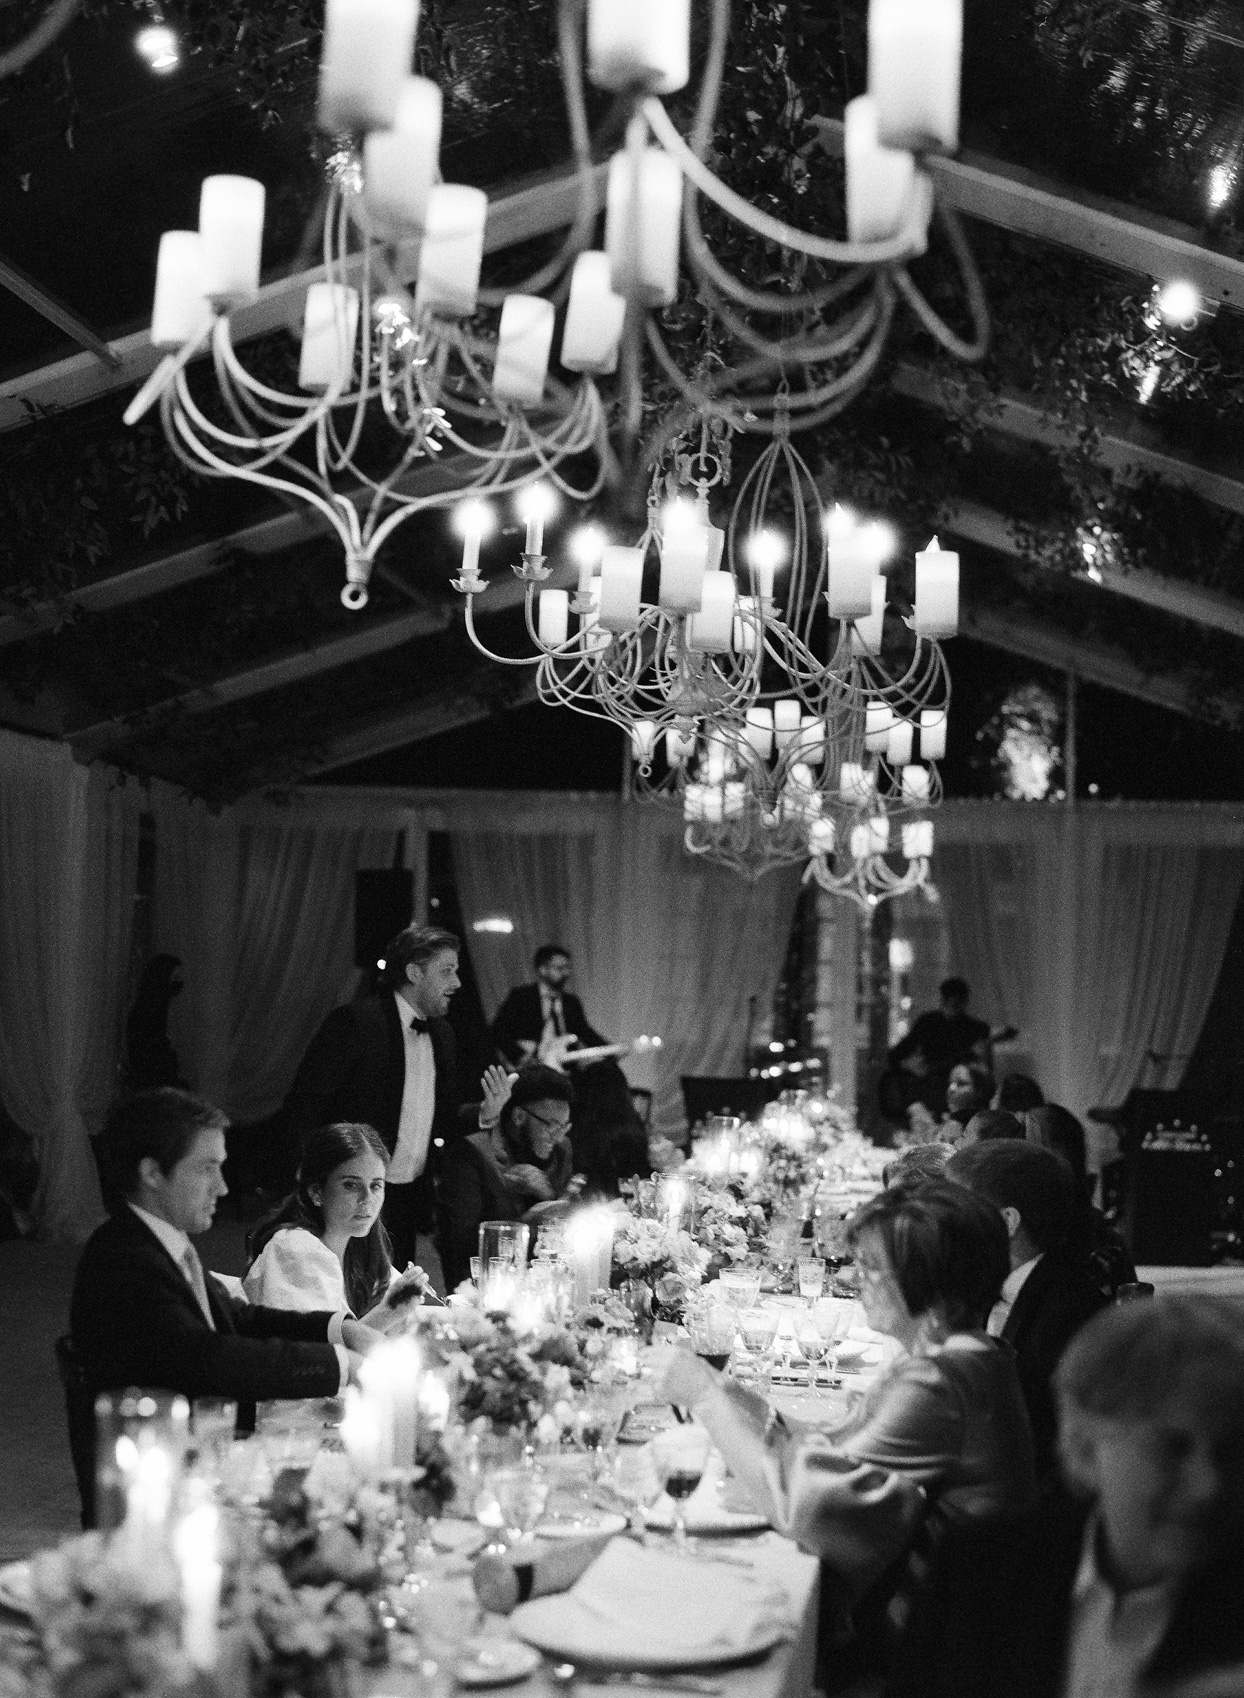 reception dinner at long banquet table